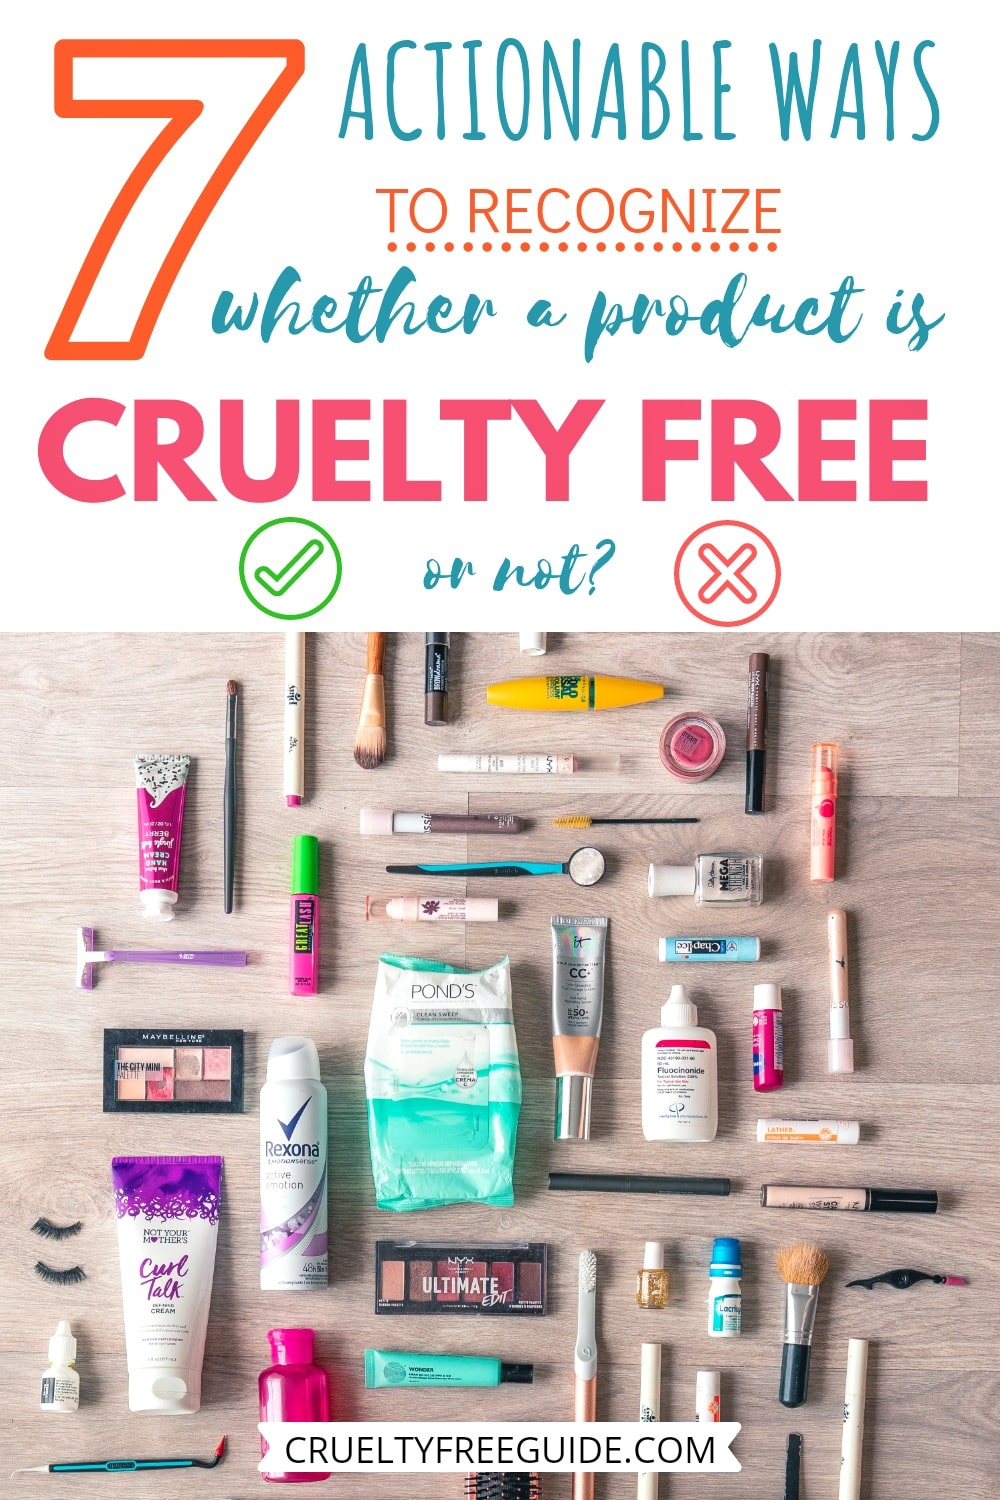 How to Recognize Cruelty Free Products